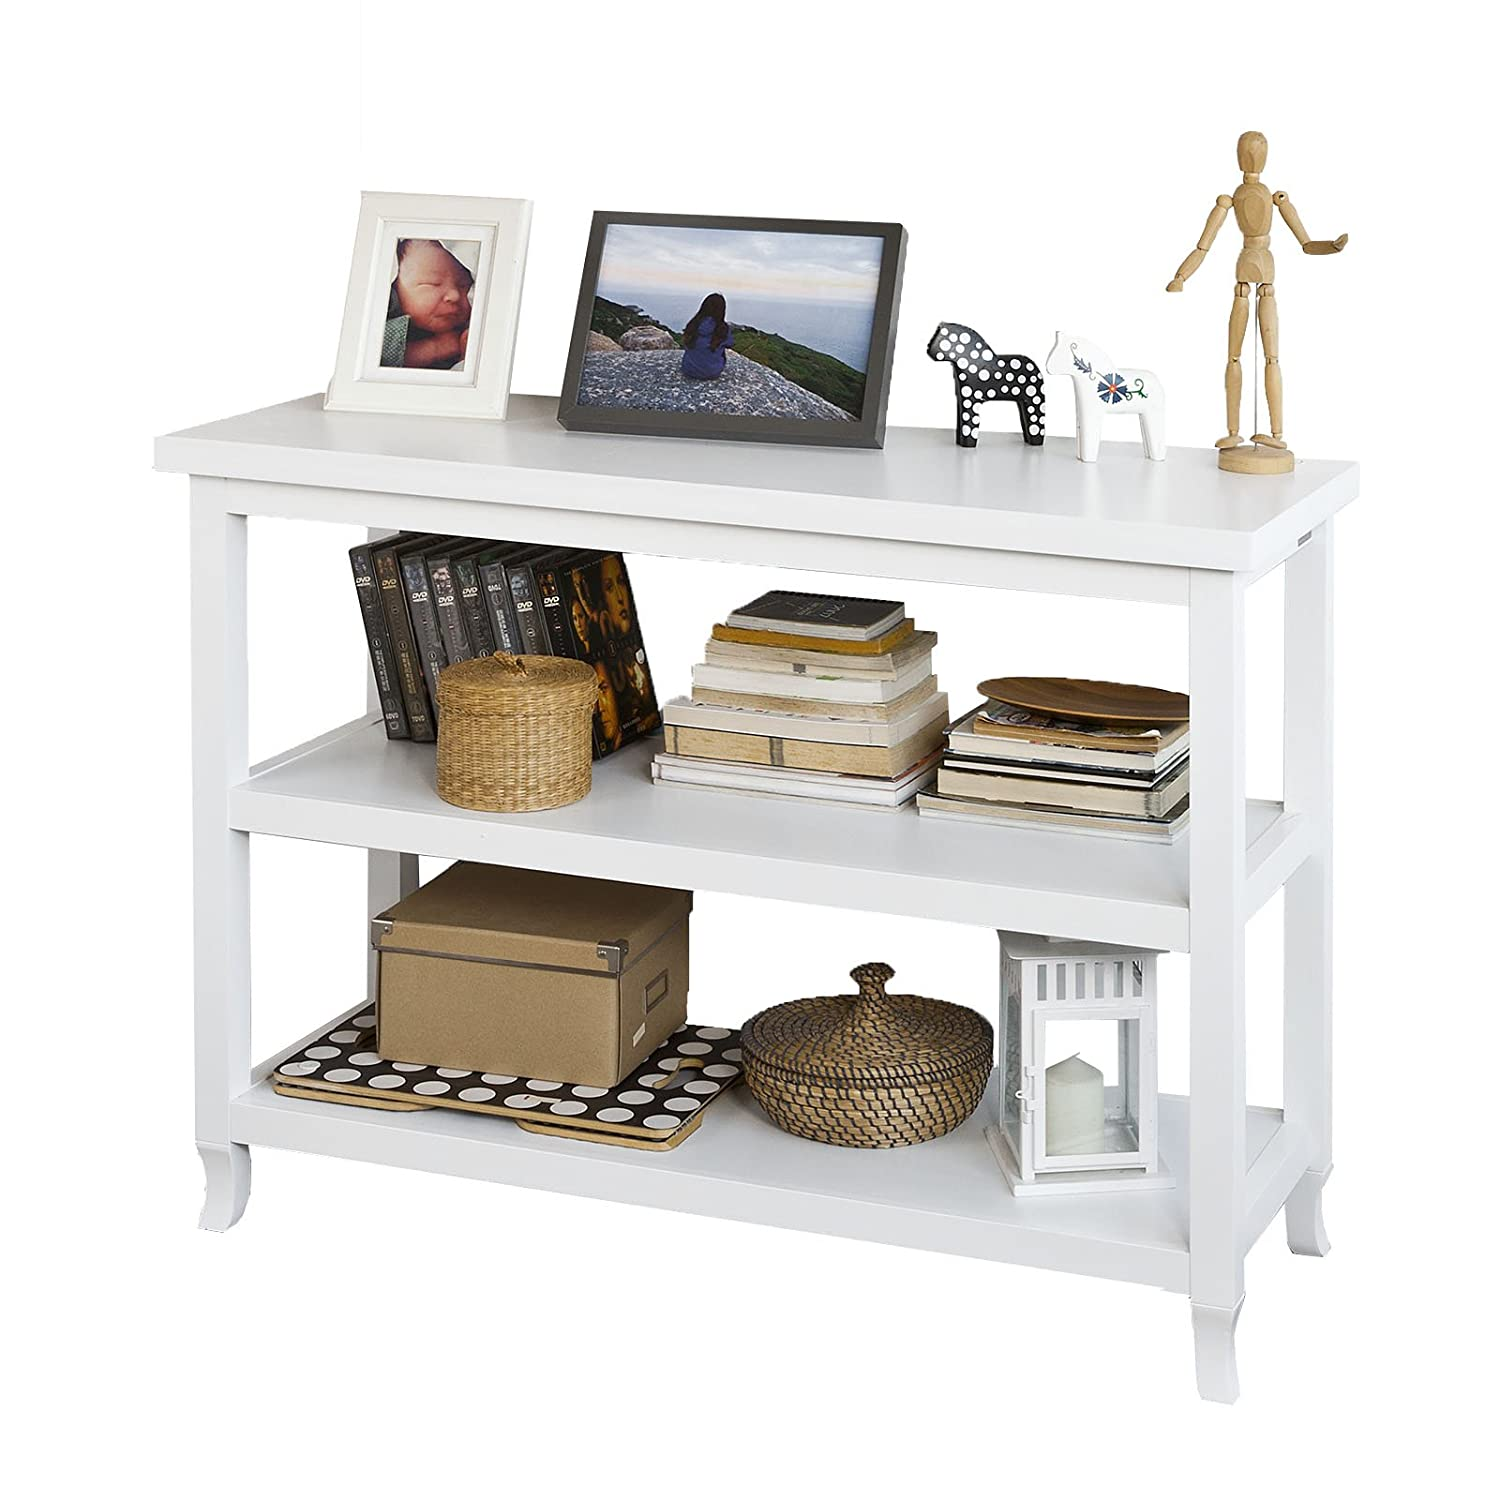 SoBuy® FSB06-W, Console Table Side Table in 3 Shelves, W110 x D40 x H80cm, White